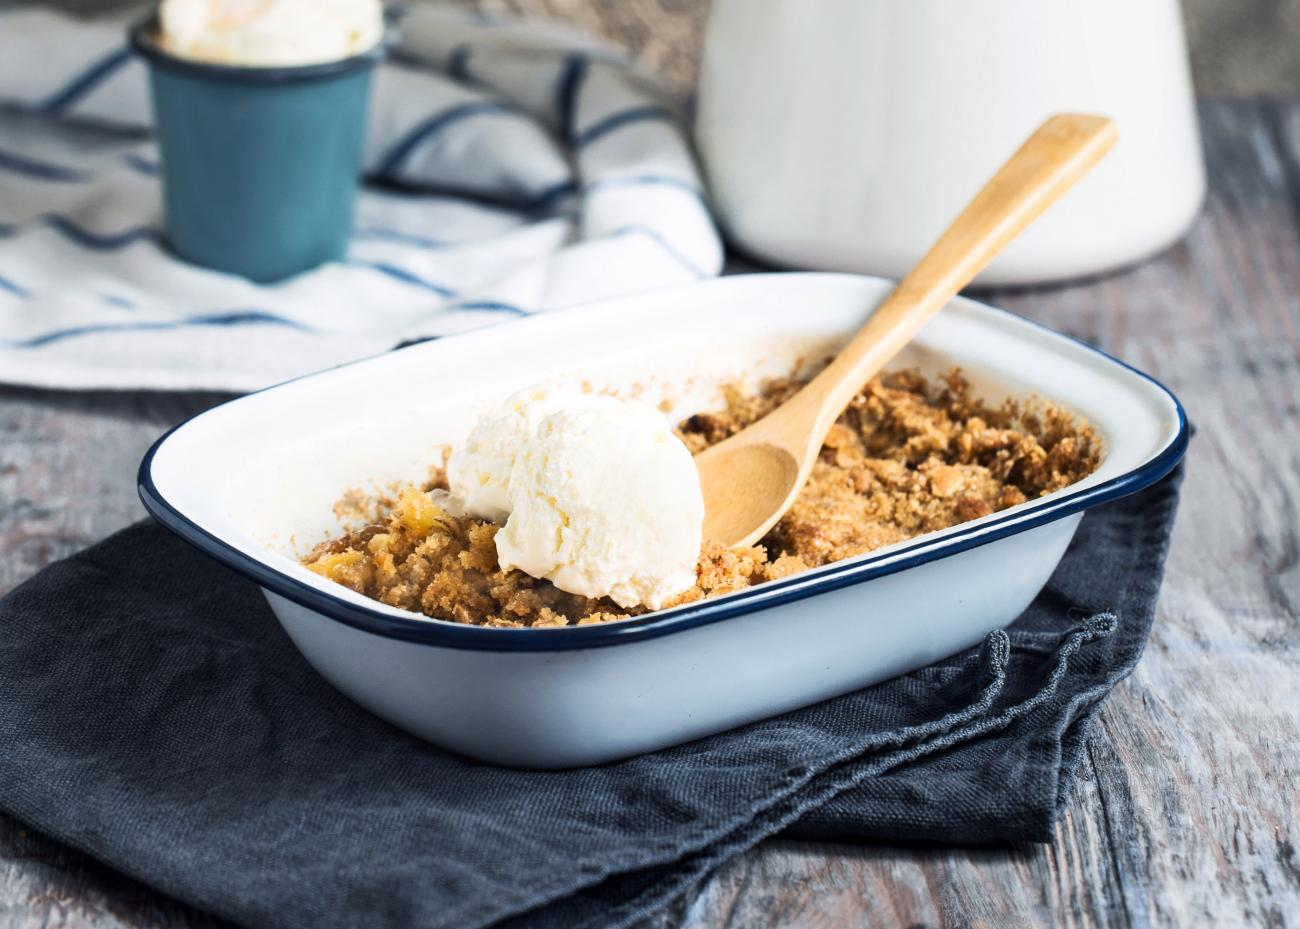 Recipe for Oatmeal Apple Crisp